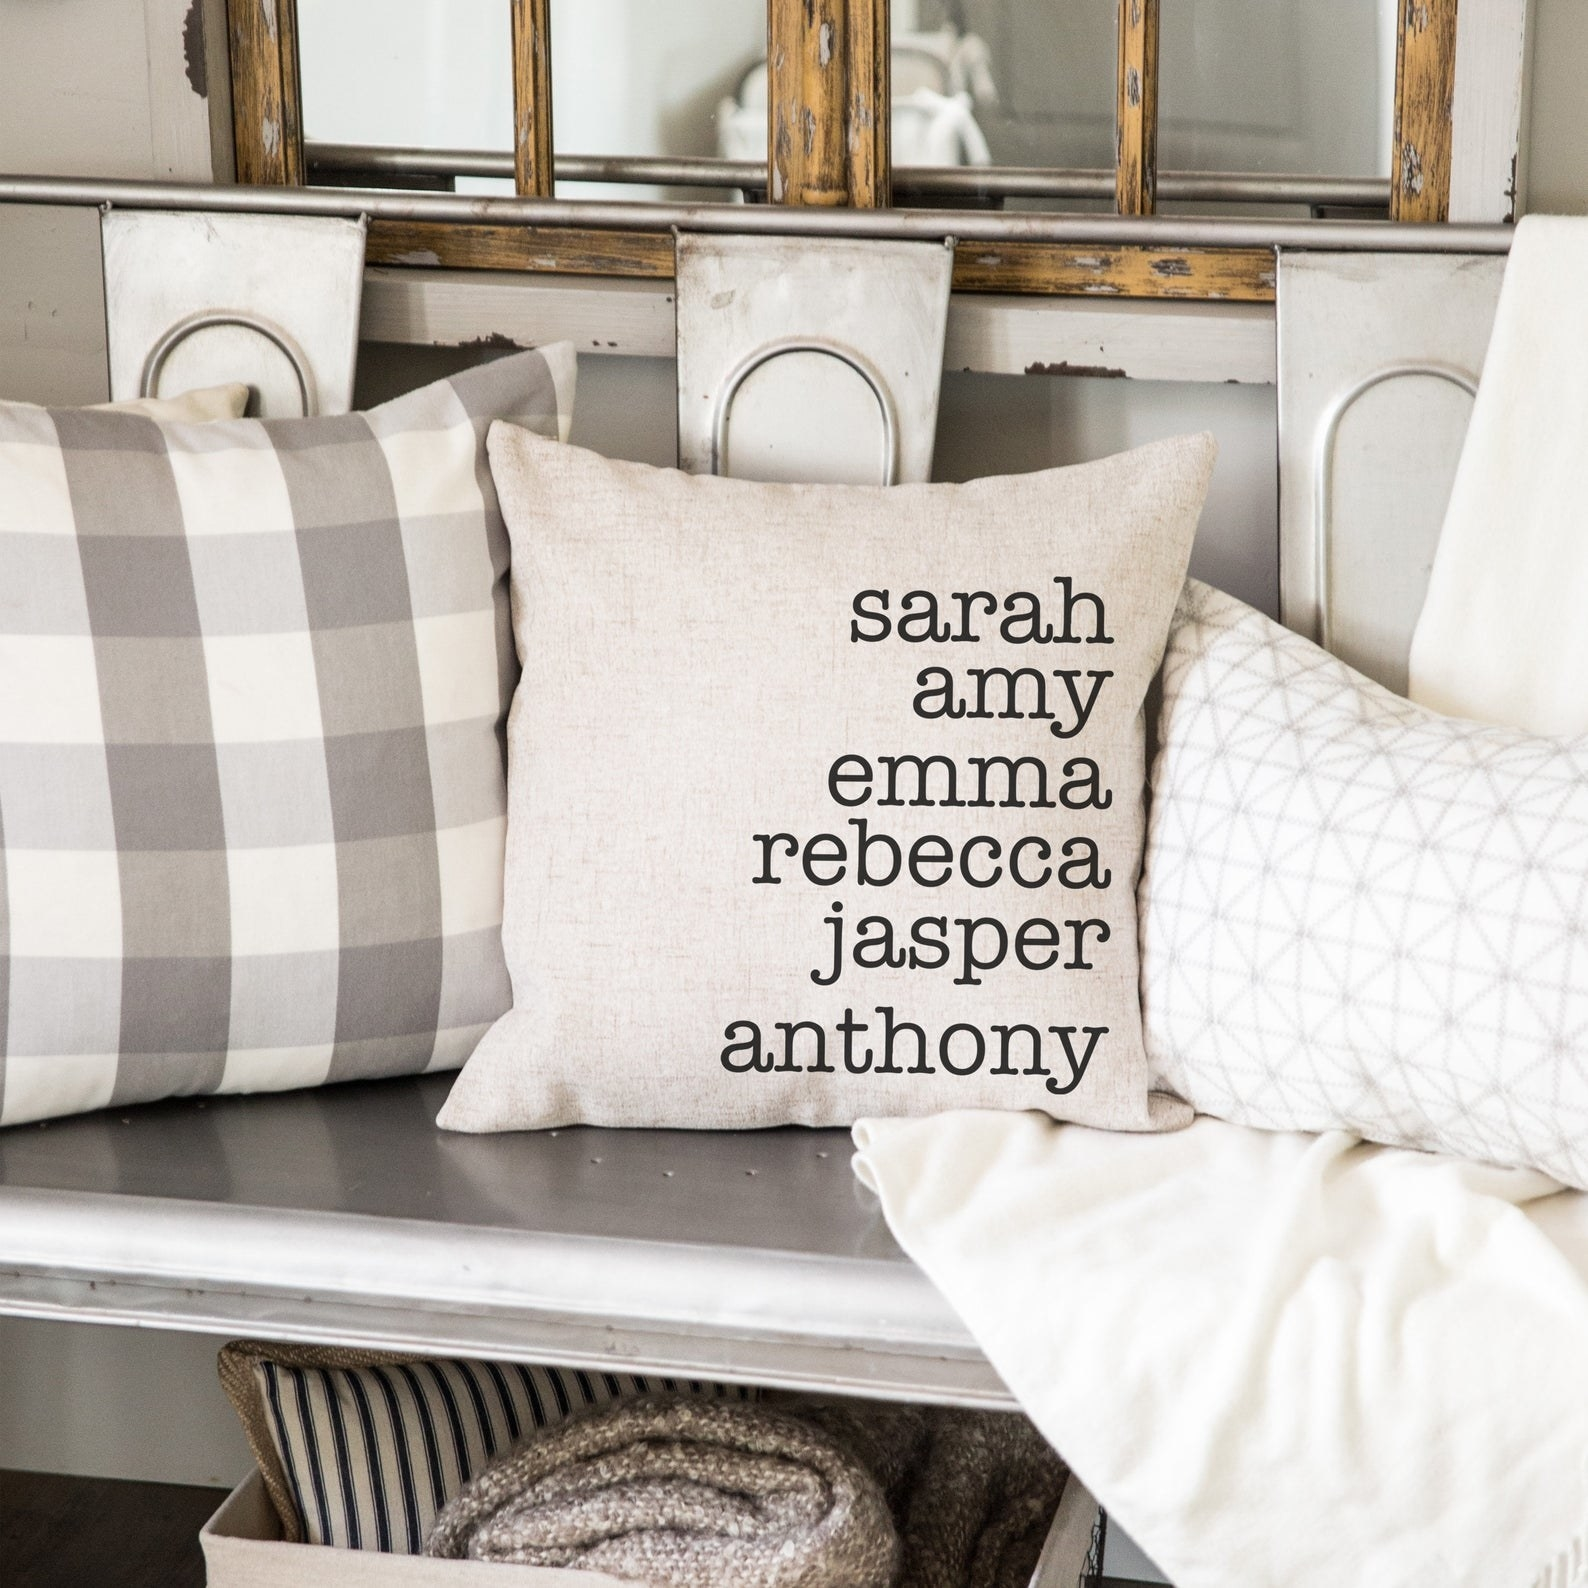 Personalized throw pillow with people's first names